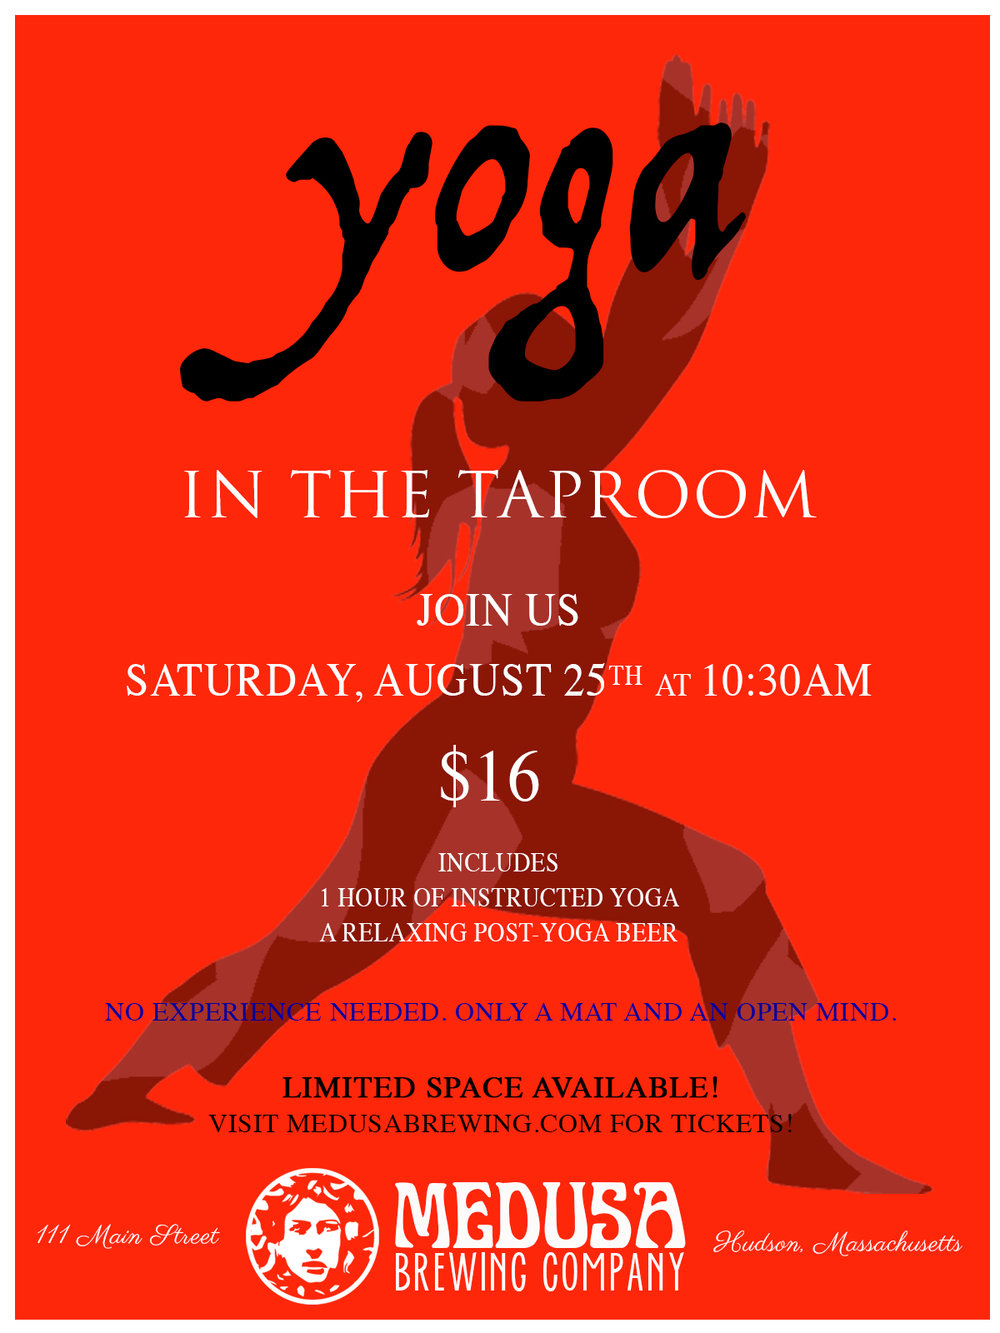 YOGA AND BEER ALL IN ONE STOP!